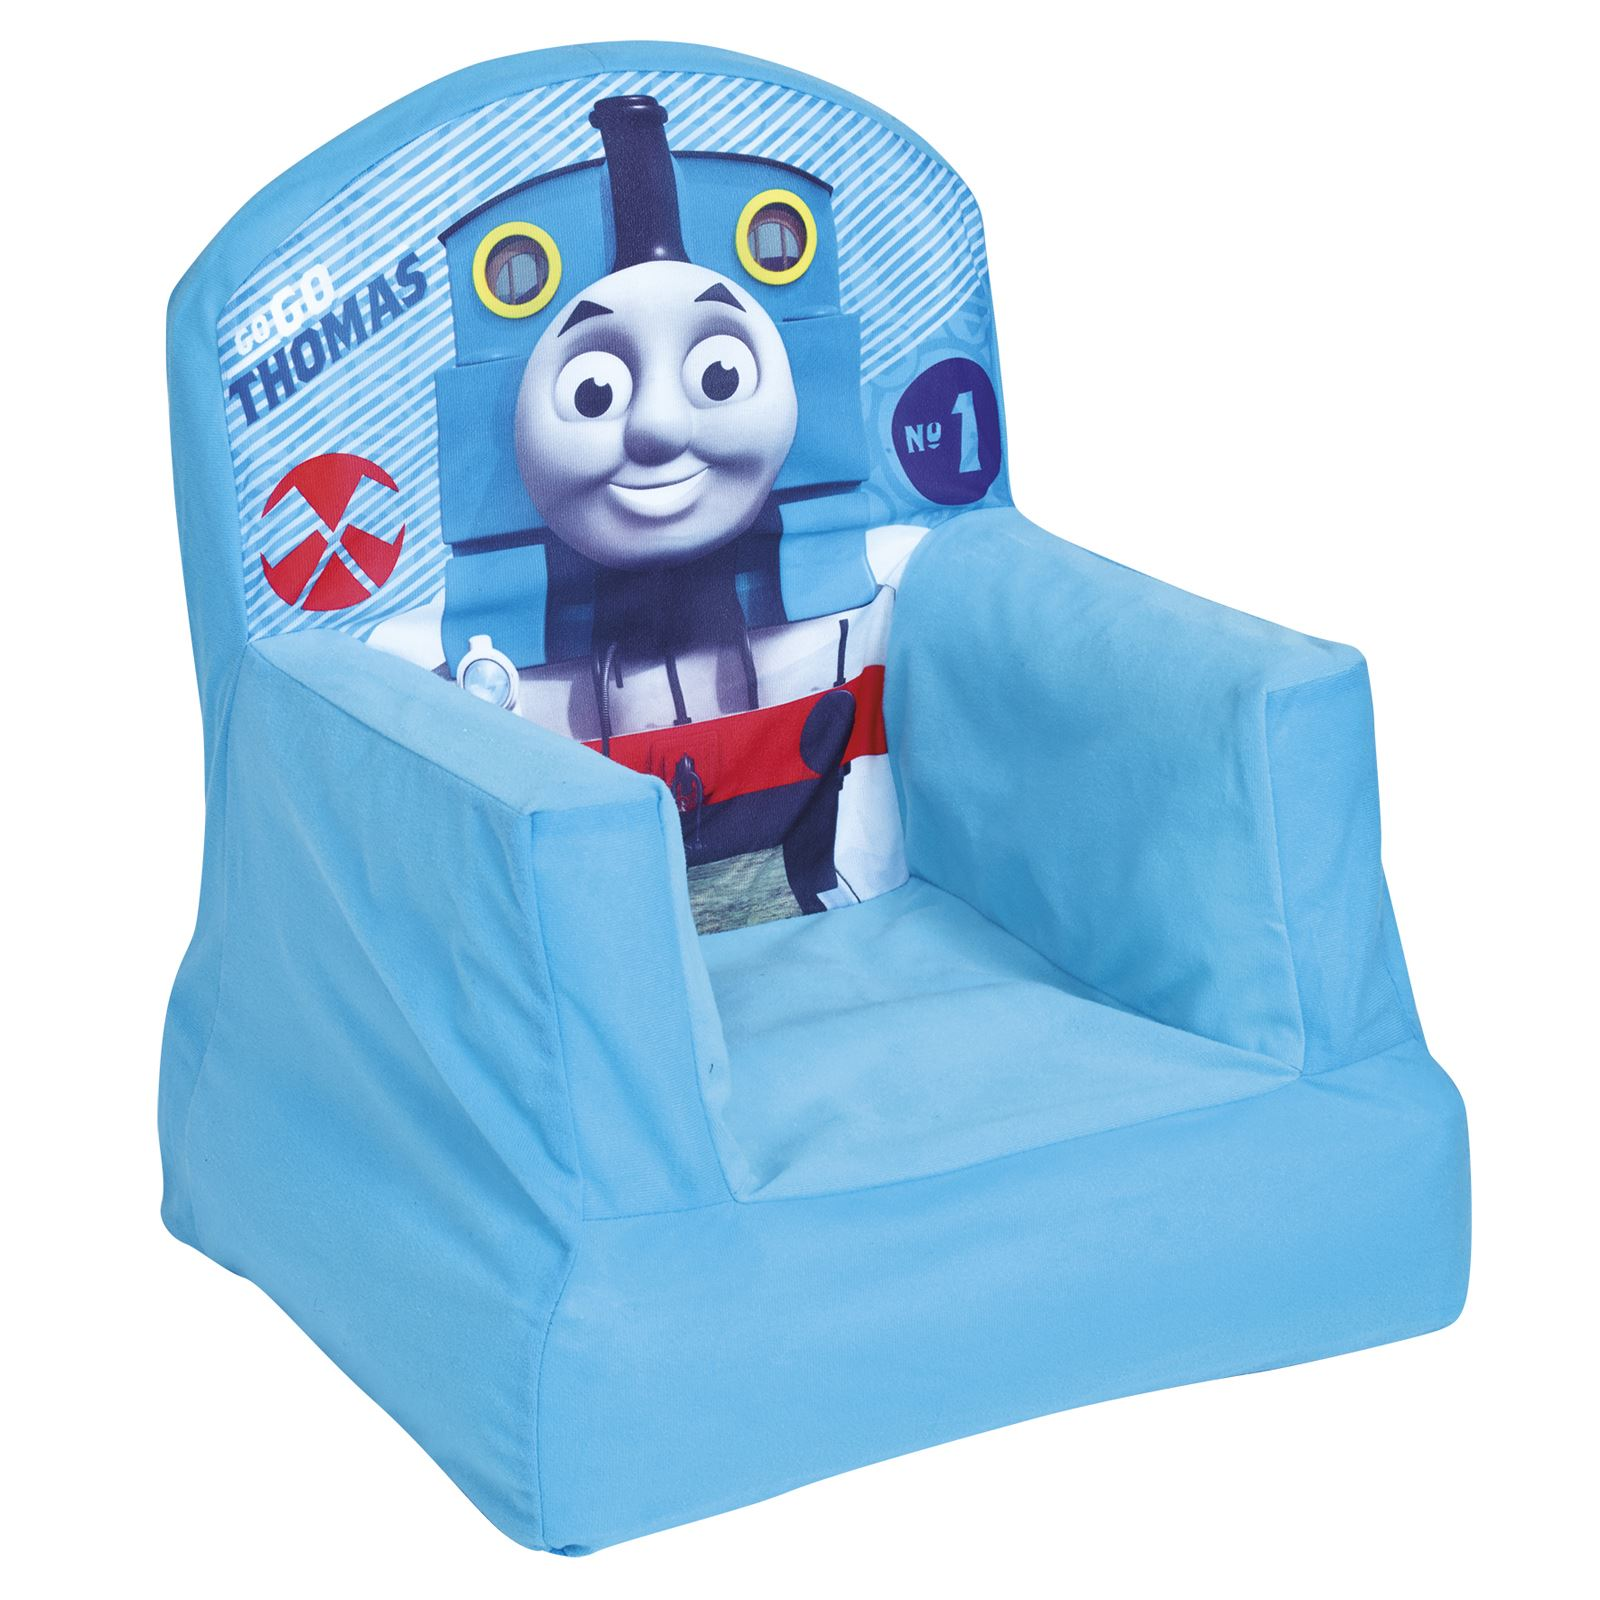 inflatable chairs for adults swivel office thomas and friends cosy chair bedroom furniture